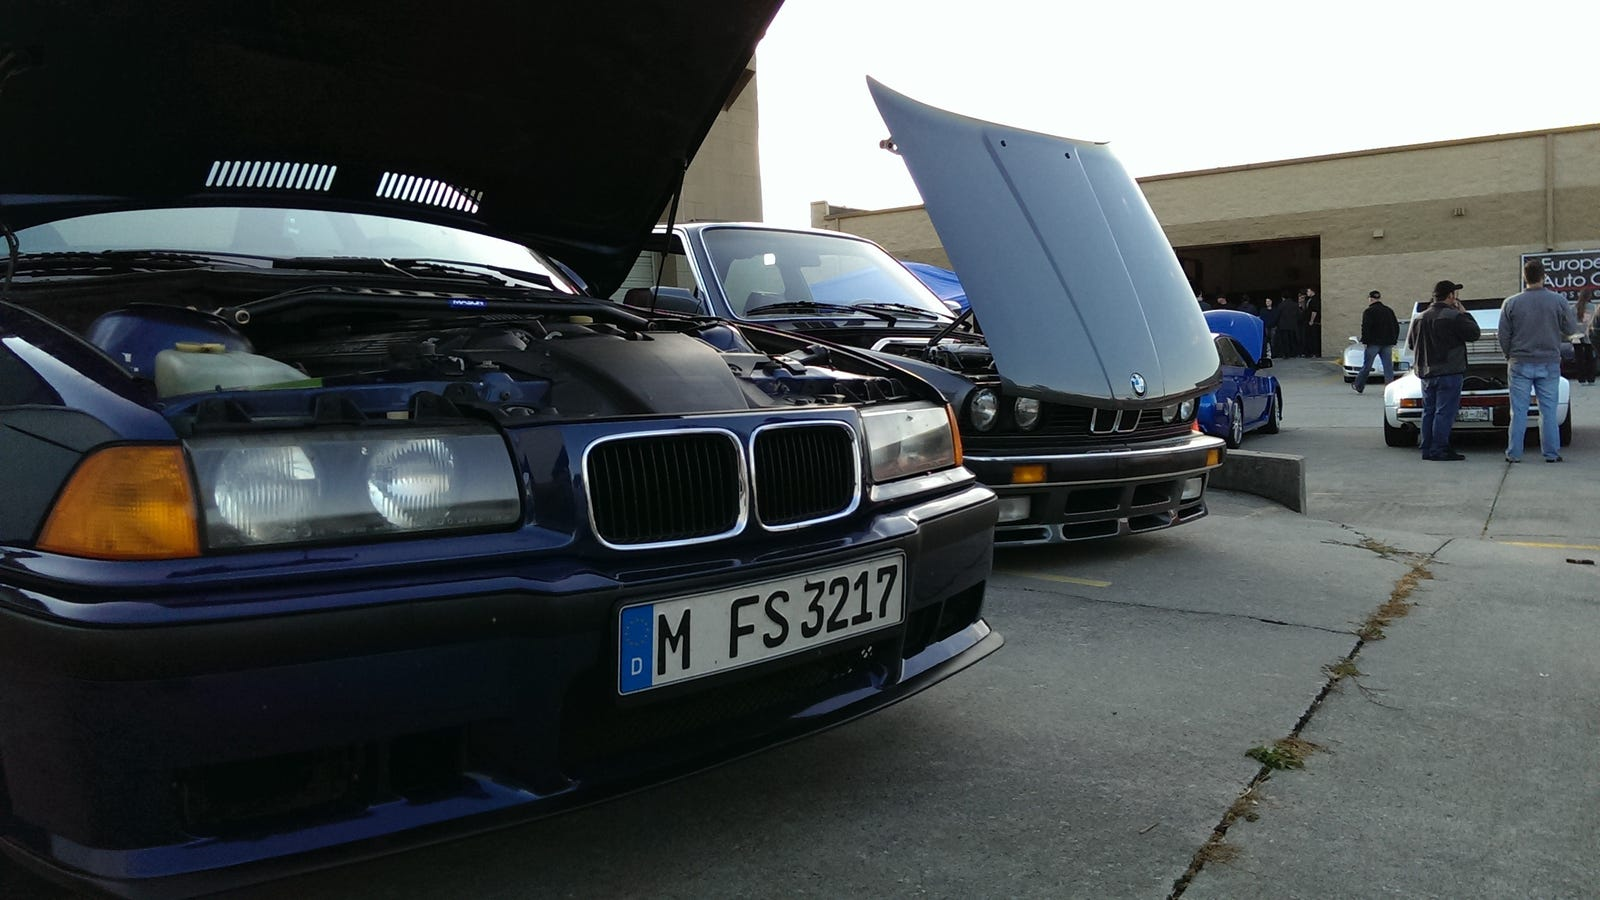 European auto garage cars and coffee knoxville 11 2 13 for Garage europe auto center fresnes